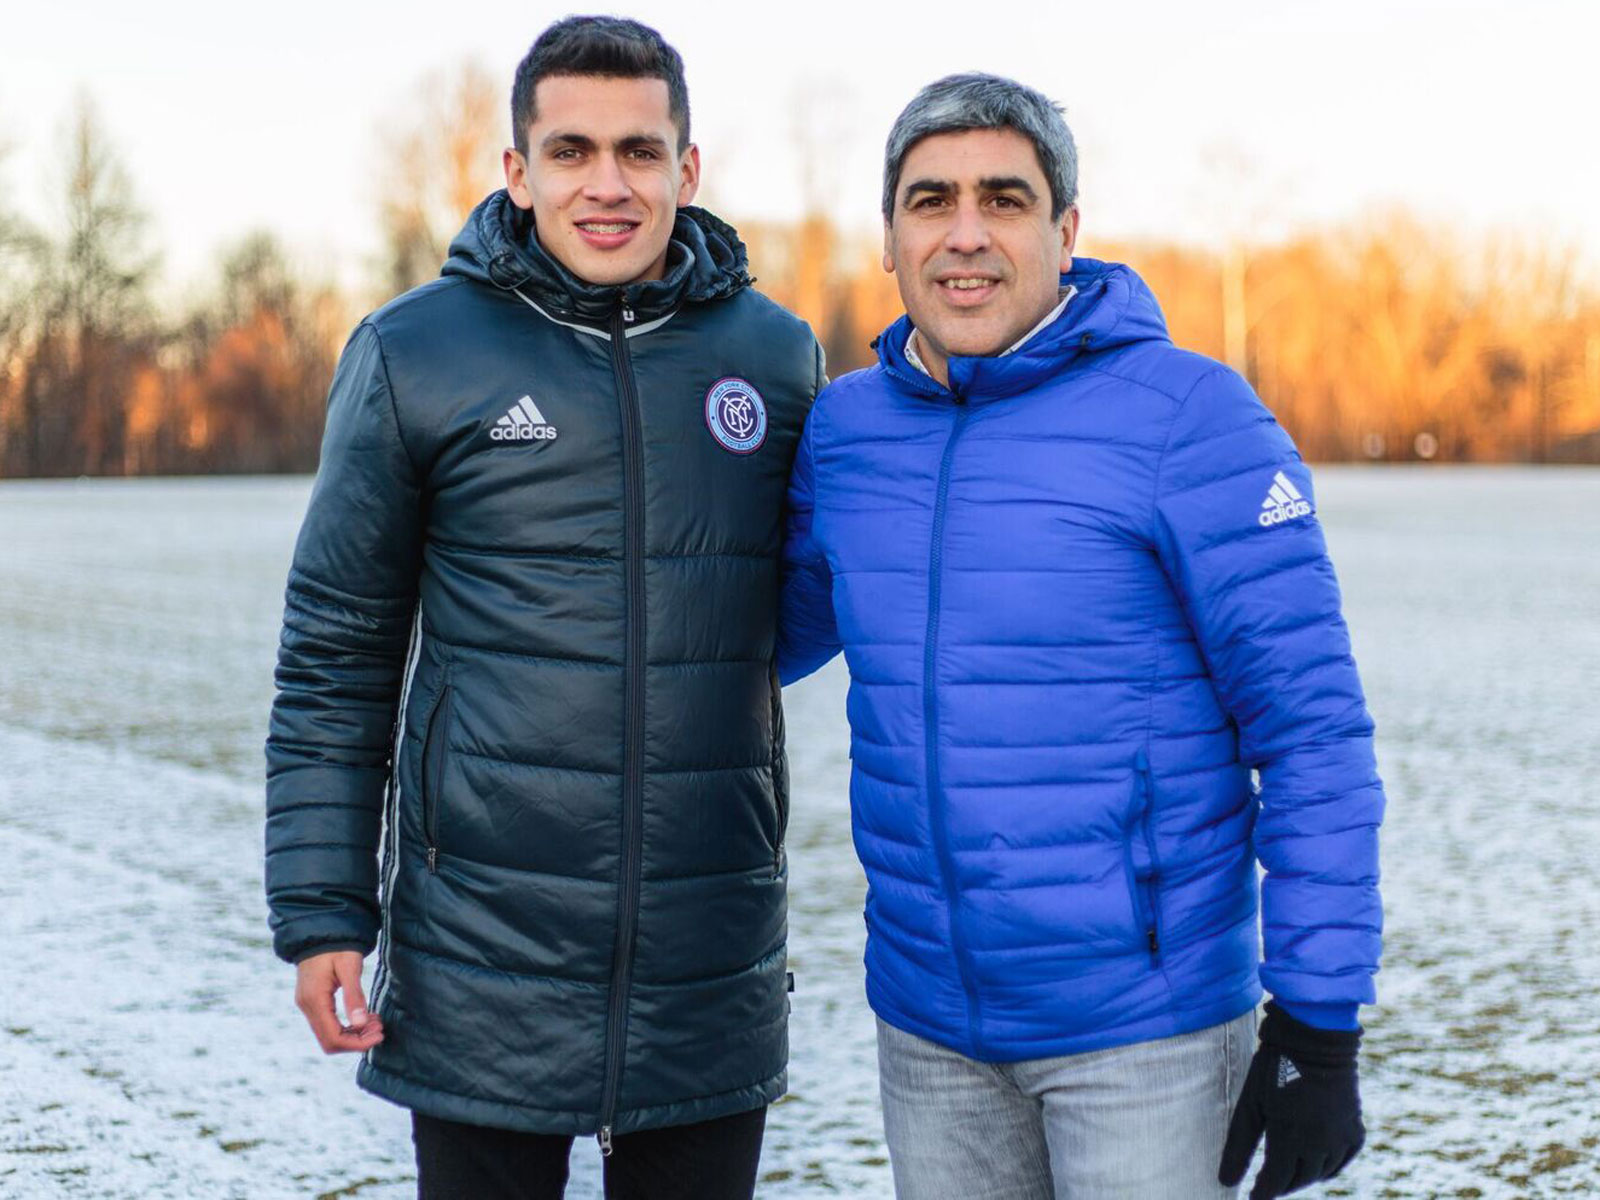 Jesus Medina has signed with New York City FC